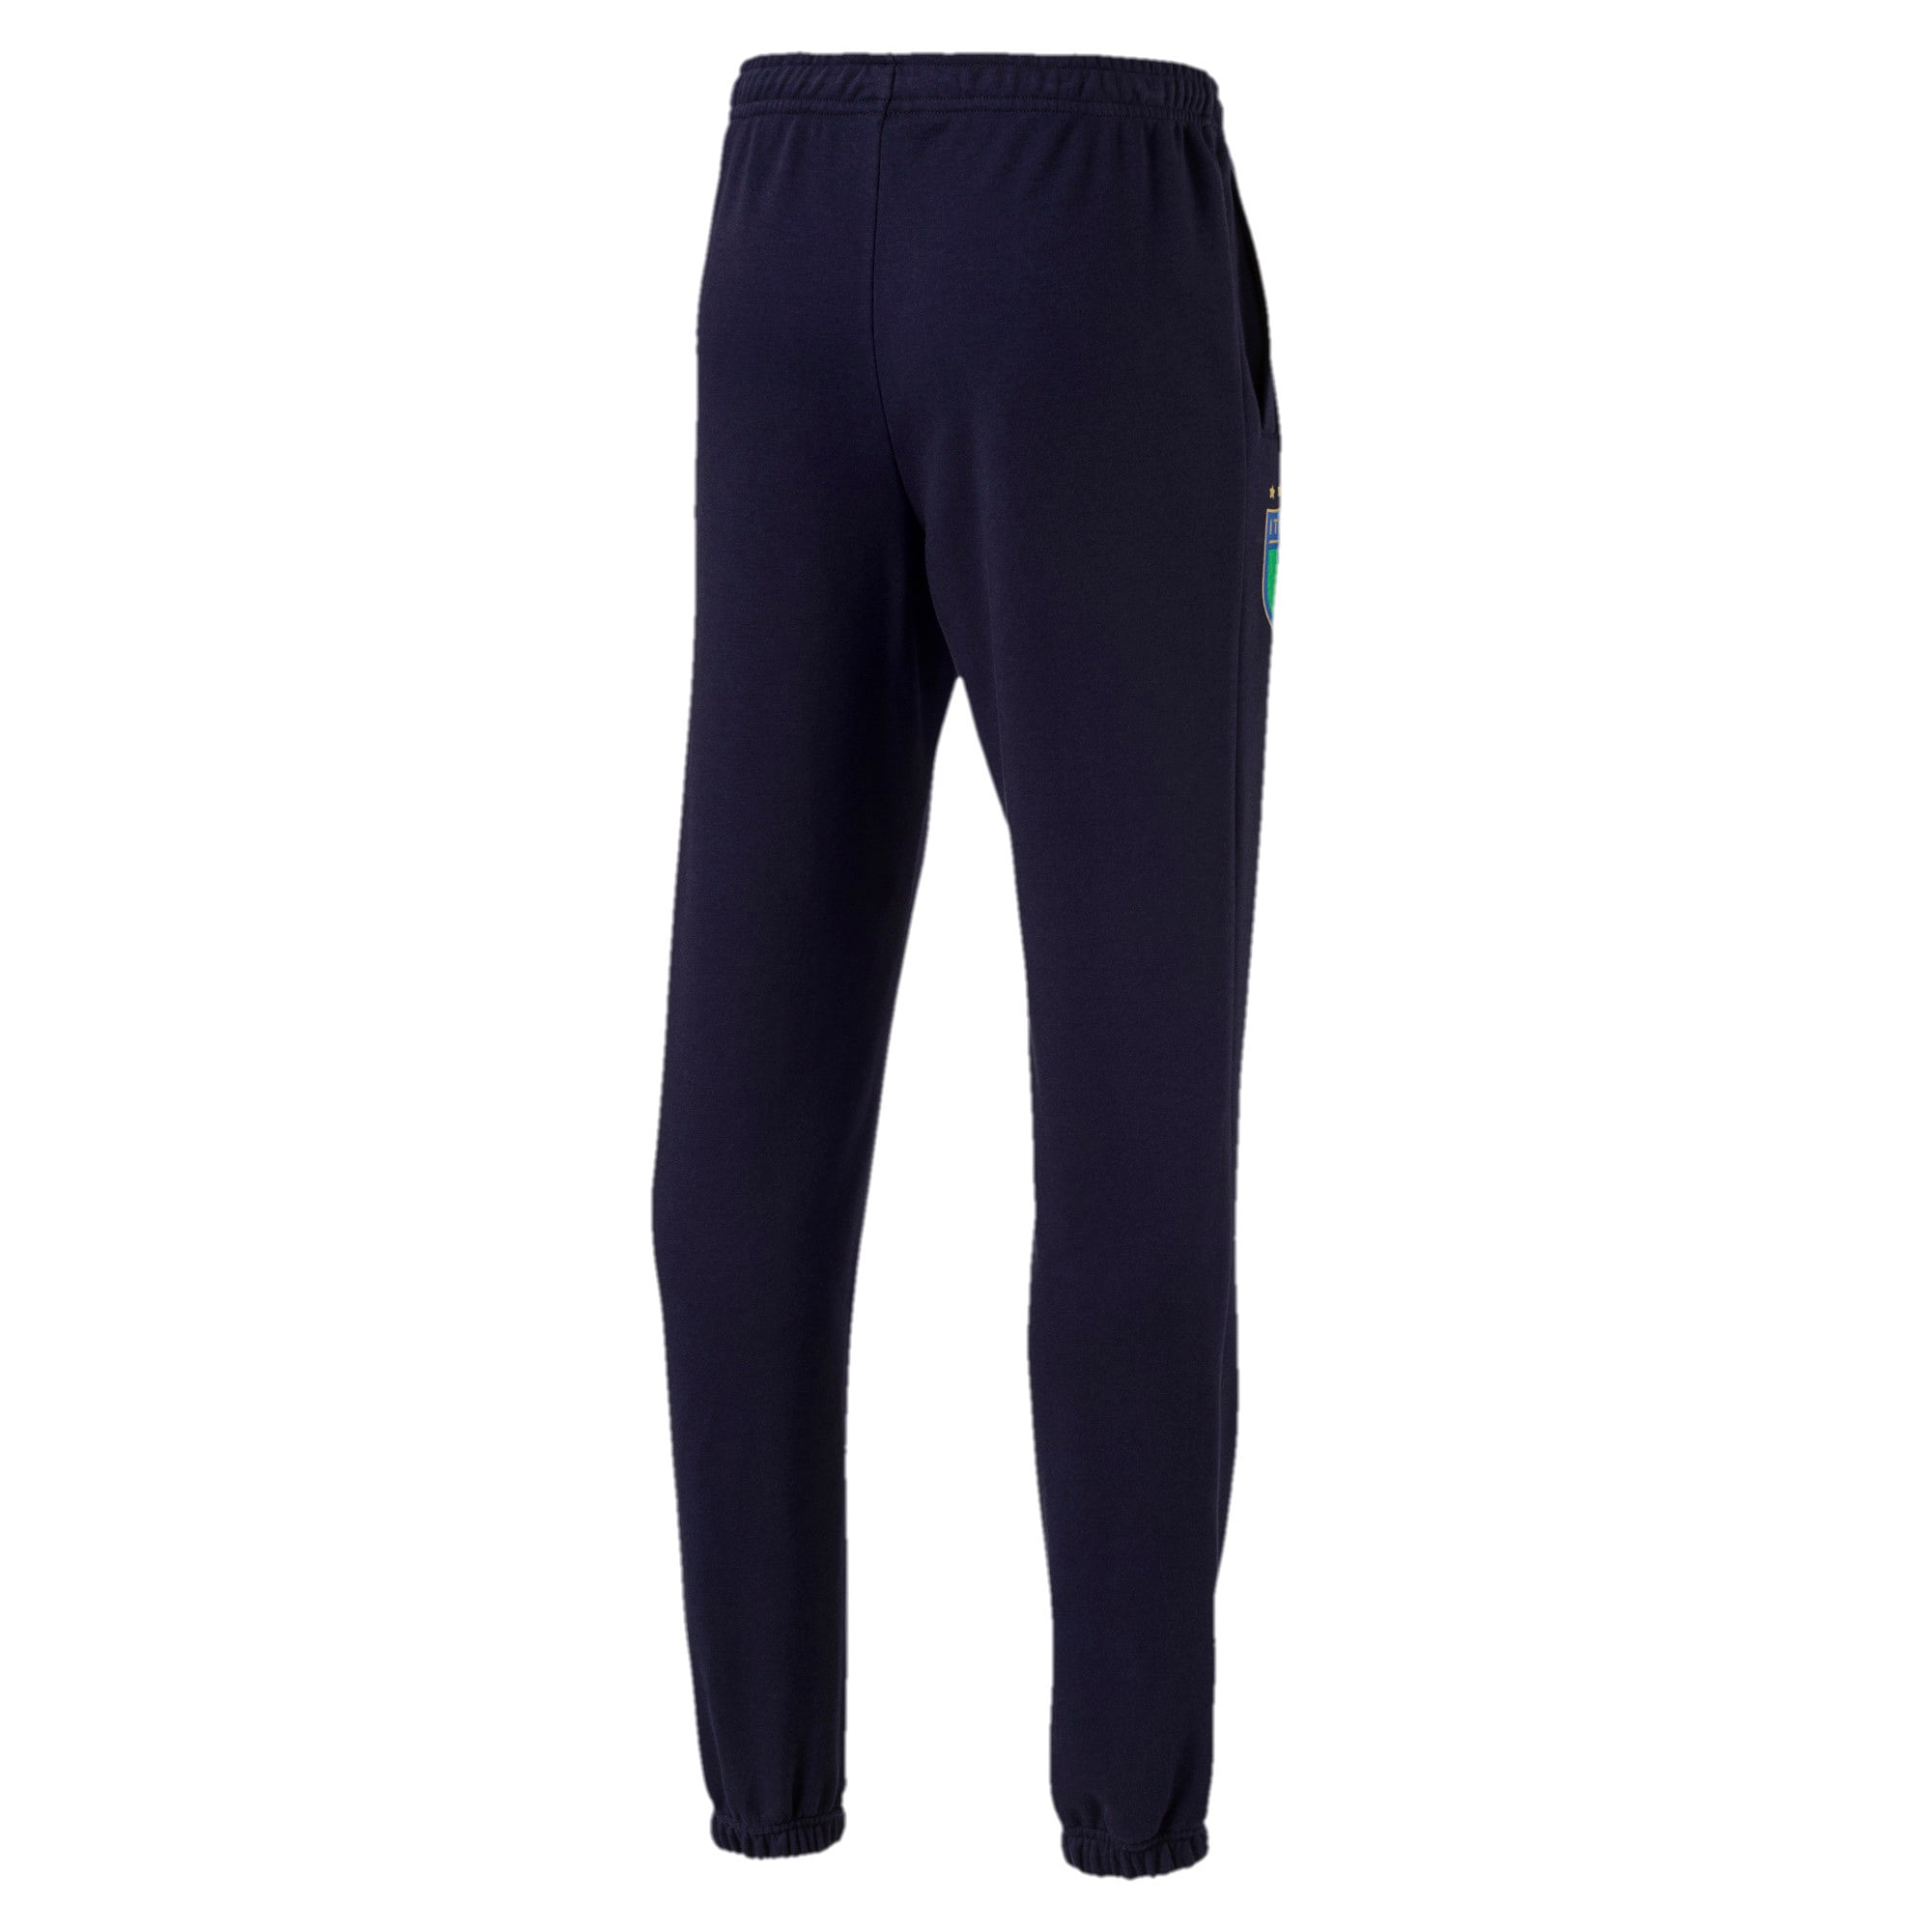 Thumbnail 4 of Italia Herren Jogginghose, Peacoat, medium